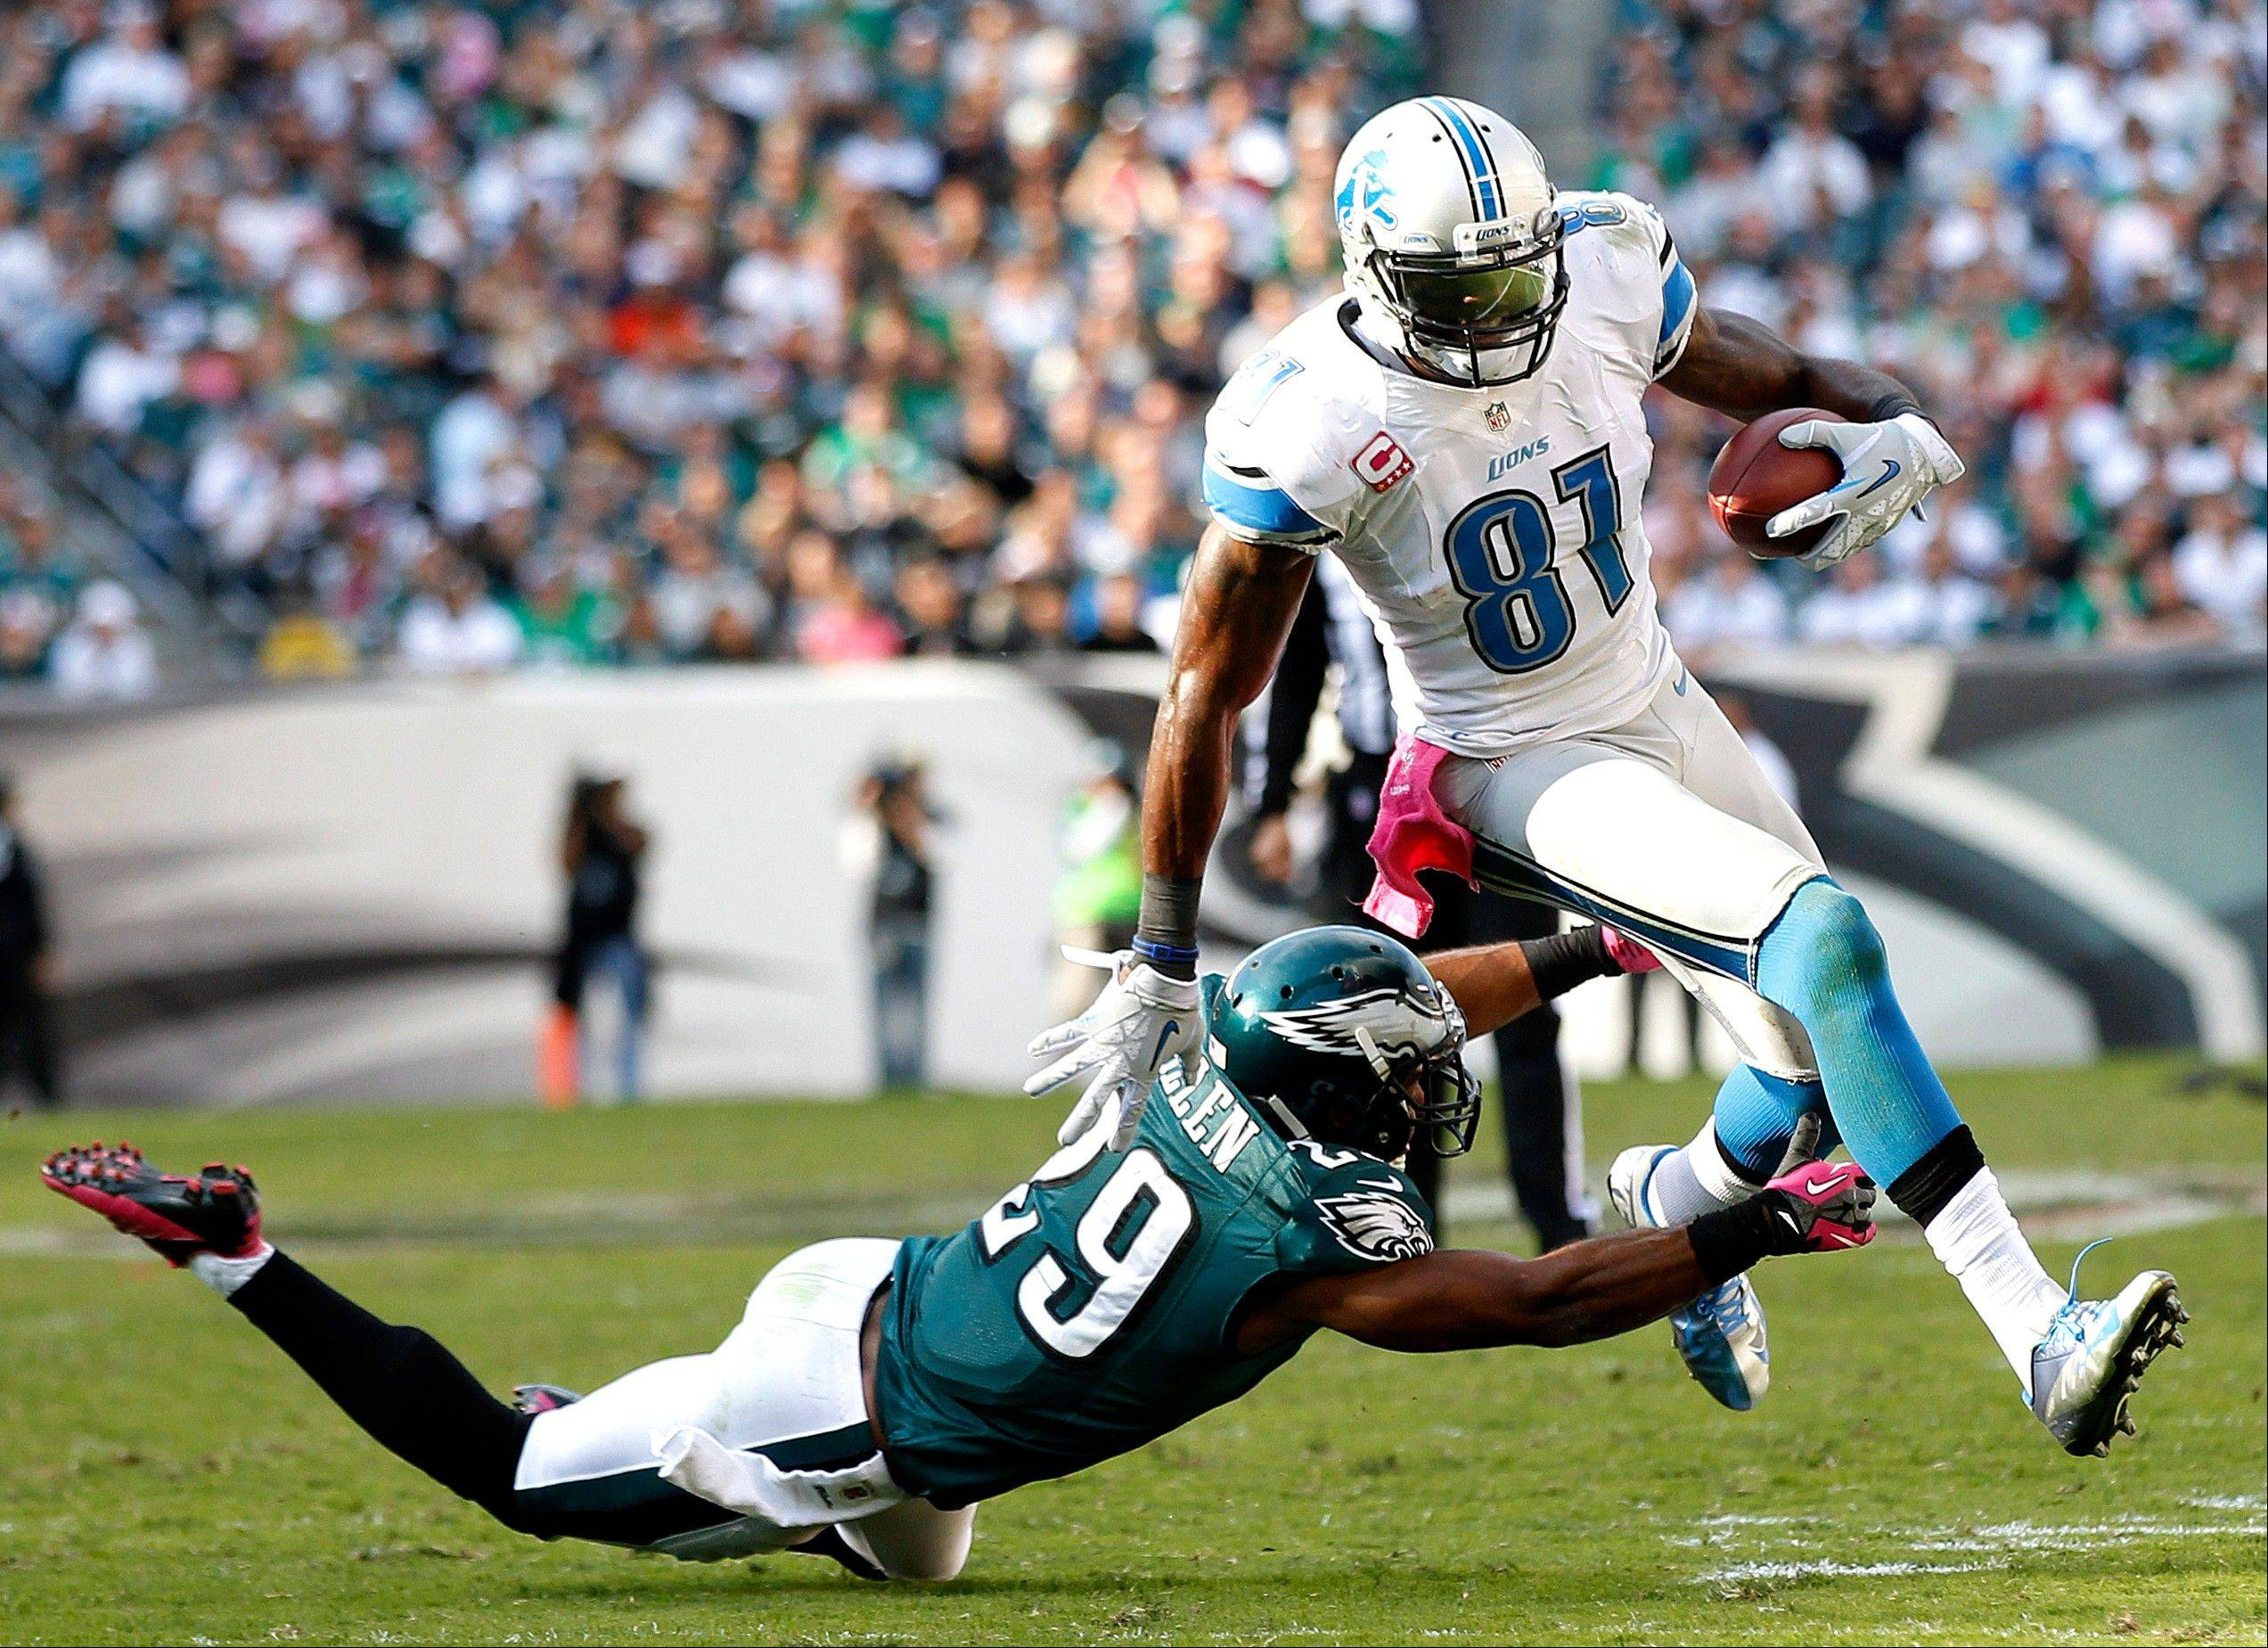 Lions wide receiver Calvin Johnson (81) avoids a tackle by Philadelphia Eagles strong safety Nate Allen (29) during the second half an NFL football game, Sunday, Oct. 14, 2012, in Philadelphia. (AP Photo/Mel Evans)